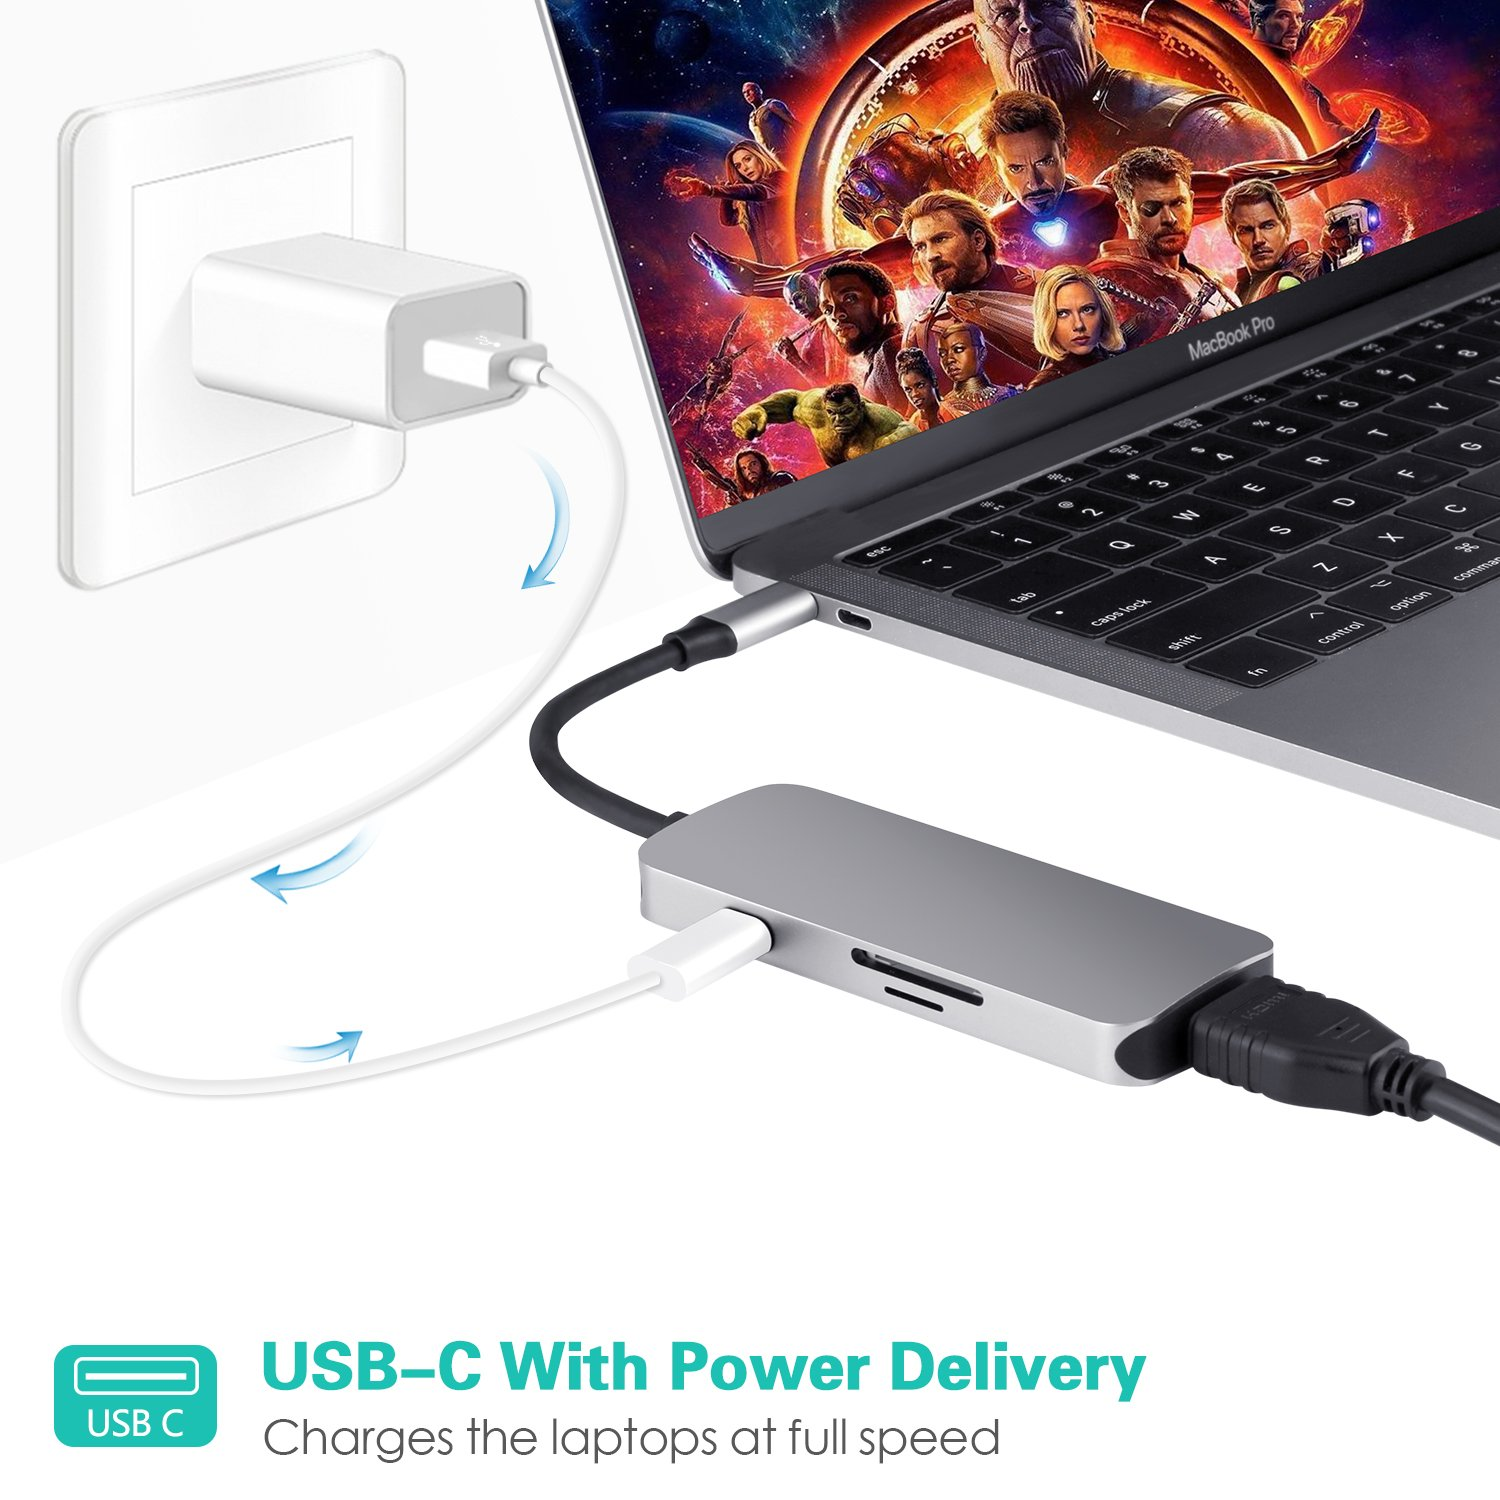 LC-dolida USB C hub MacBook, 7 in 1 USB C auf hdmi Adapter mit USB C Port,4K HDMI Anschluss,TF/SD/Micro-SD Kartenleser für MacBook/MacBook Pro 2016 2017 Samsung Galaxy S8 S8+ S9